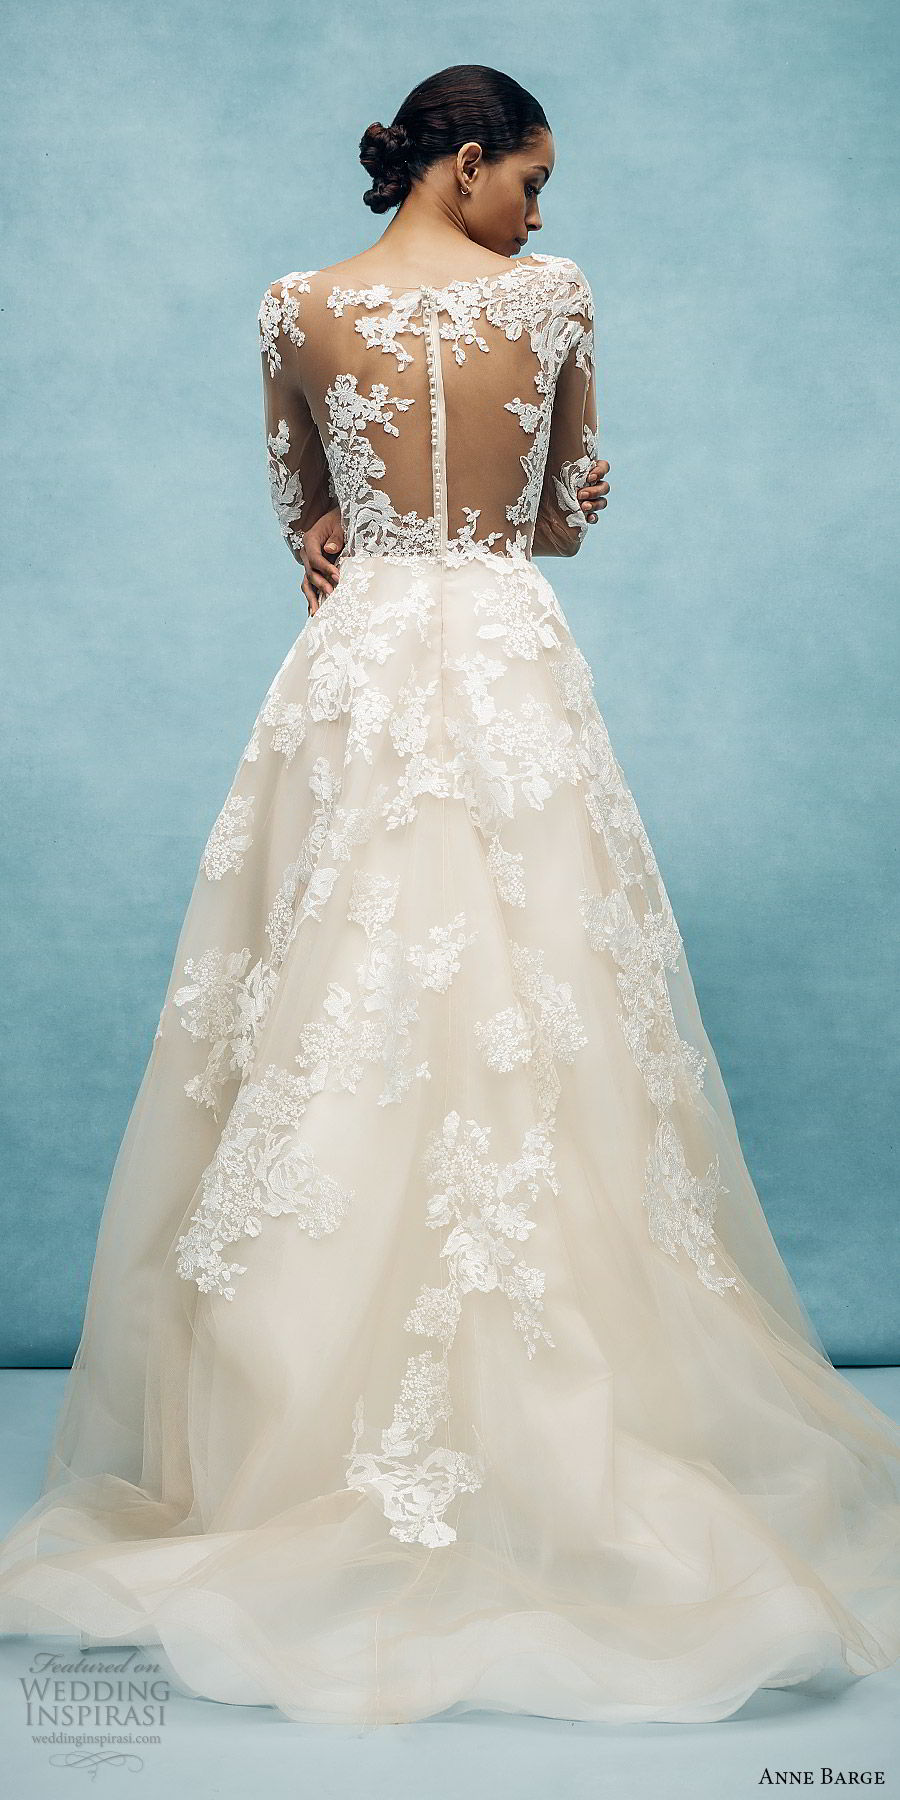 anne barge spring 2020 bridal illusion long sleeves sheer v neck sweetheart lace a line ball gown wedding dress (7) romantic classic chapel train bv